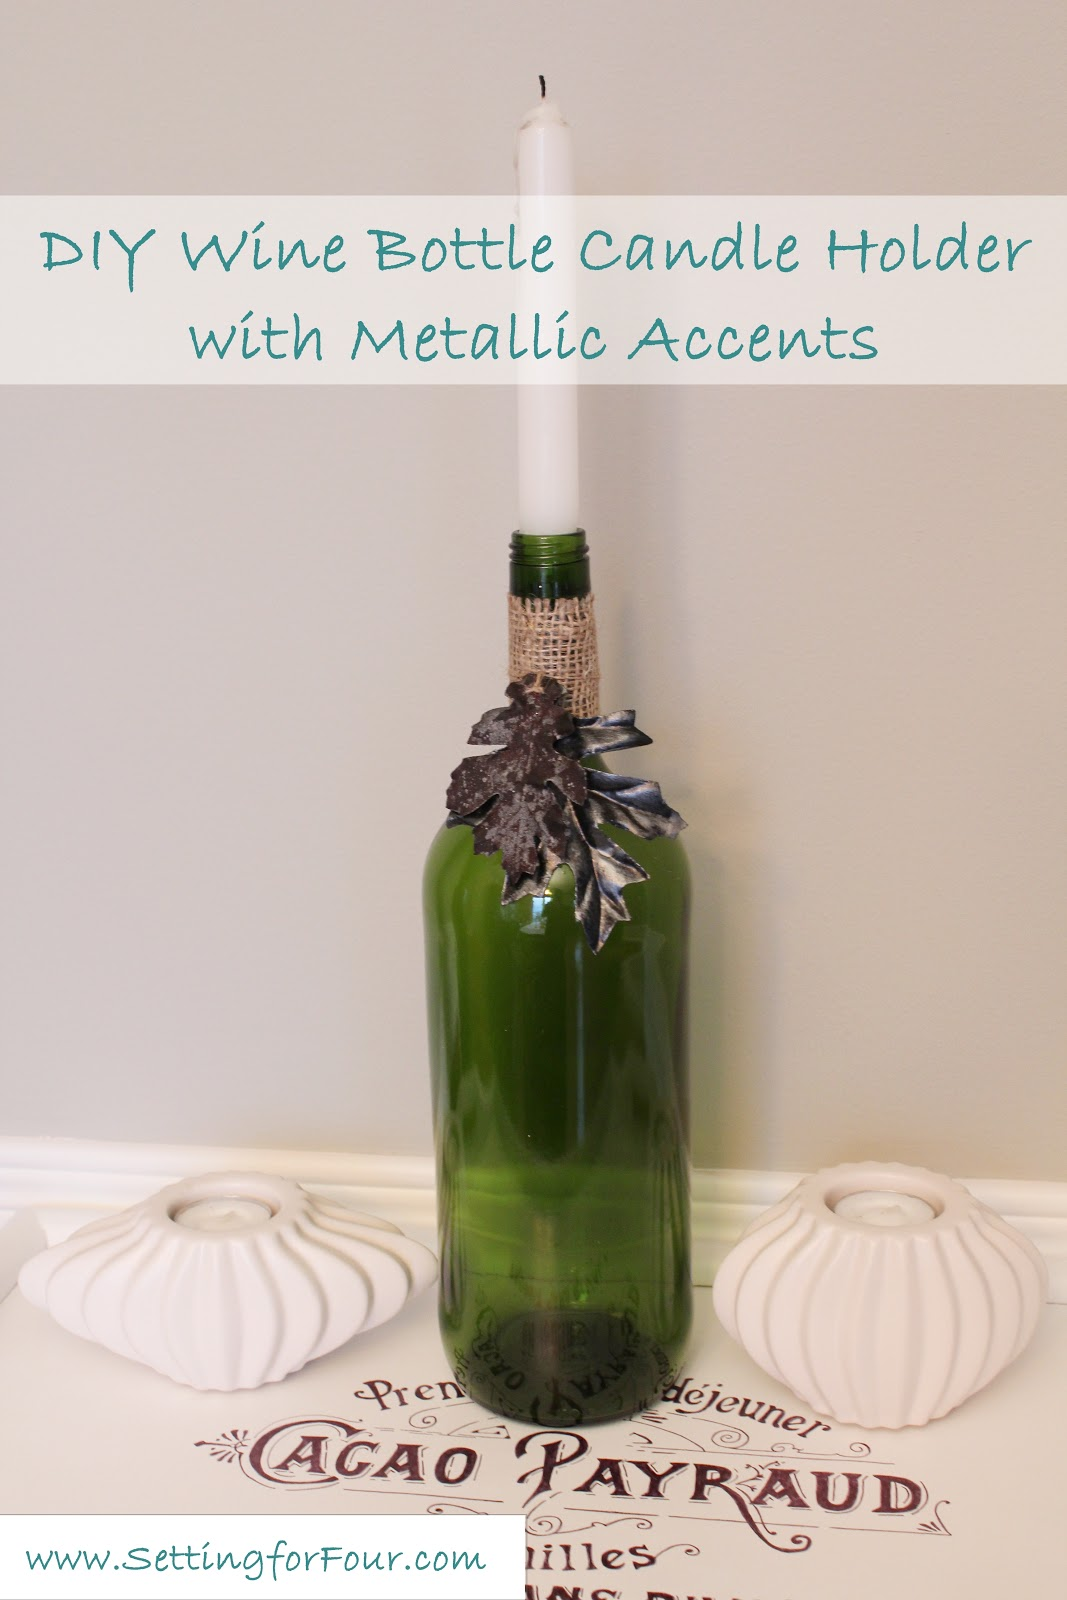 DIY Wine Bottle Candle Holder with Metallic Accents